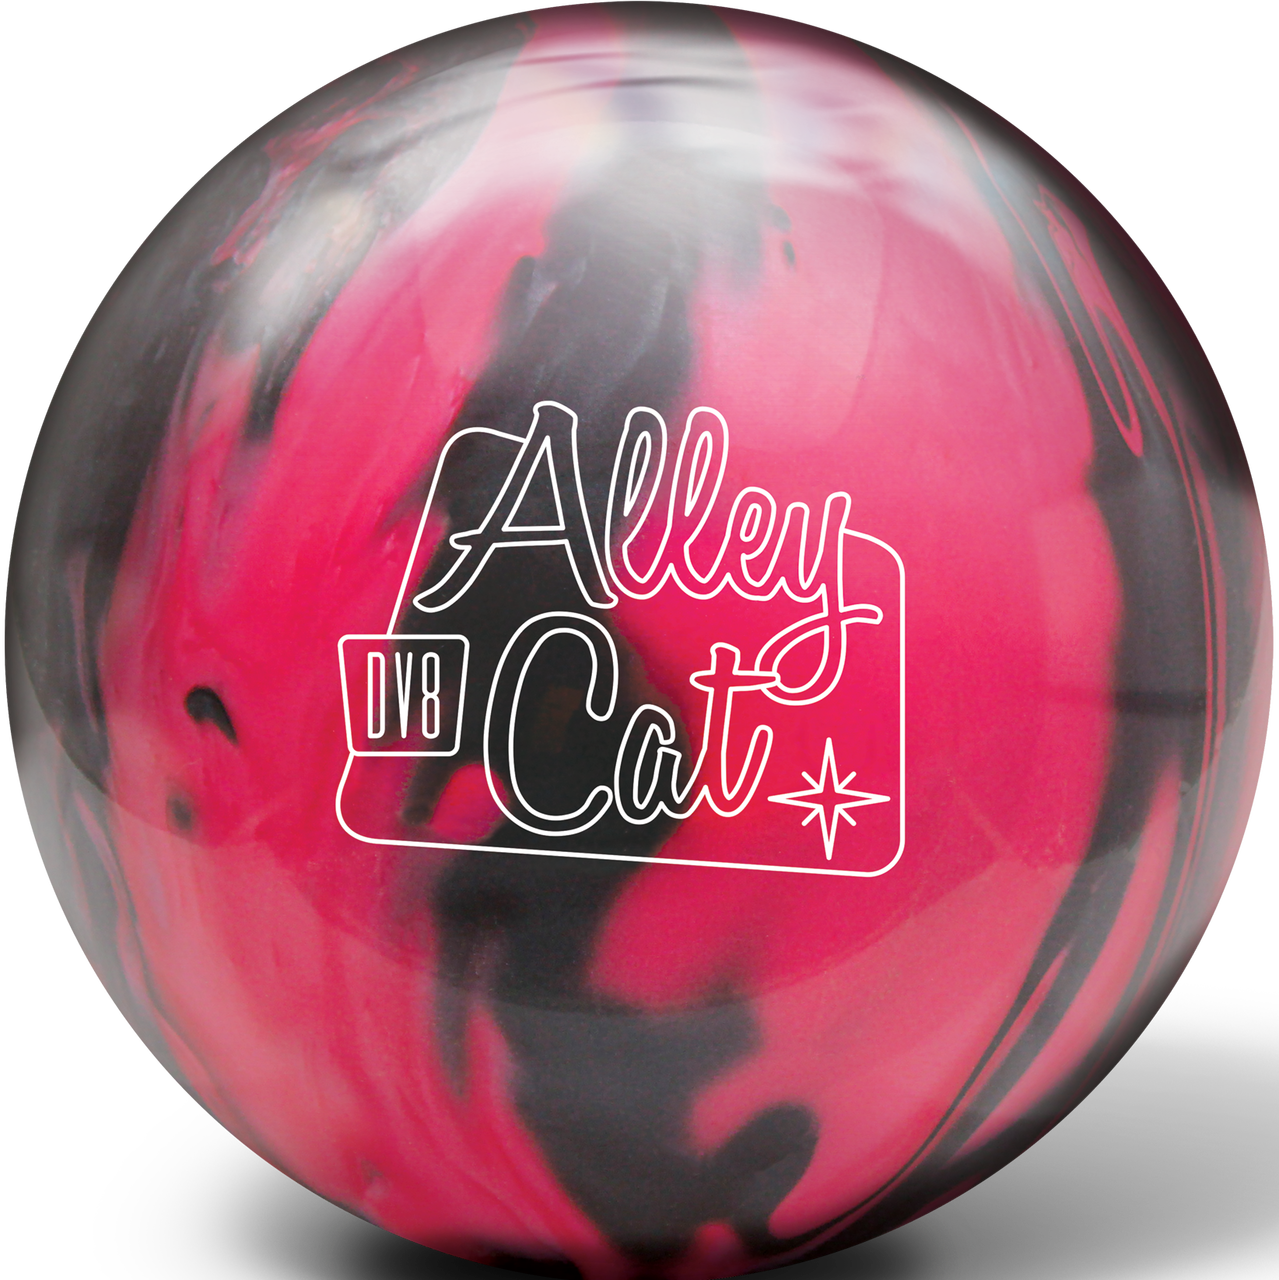 Black bowling ball png. Dv alley cat by